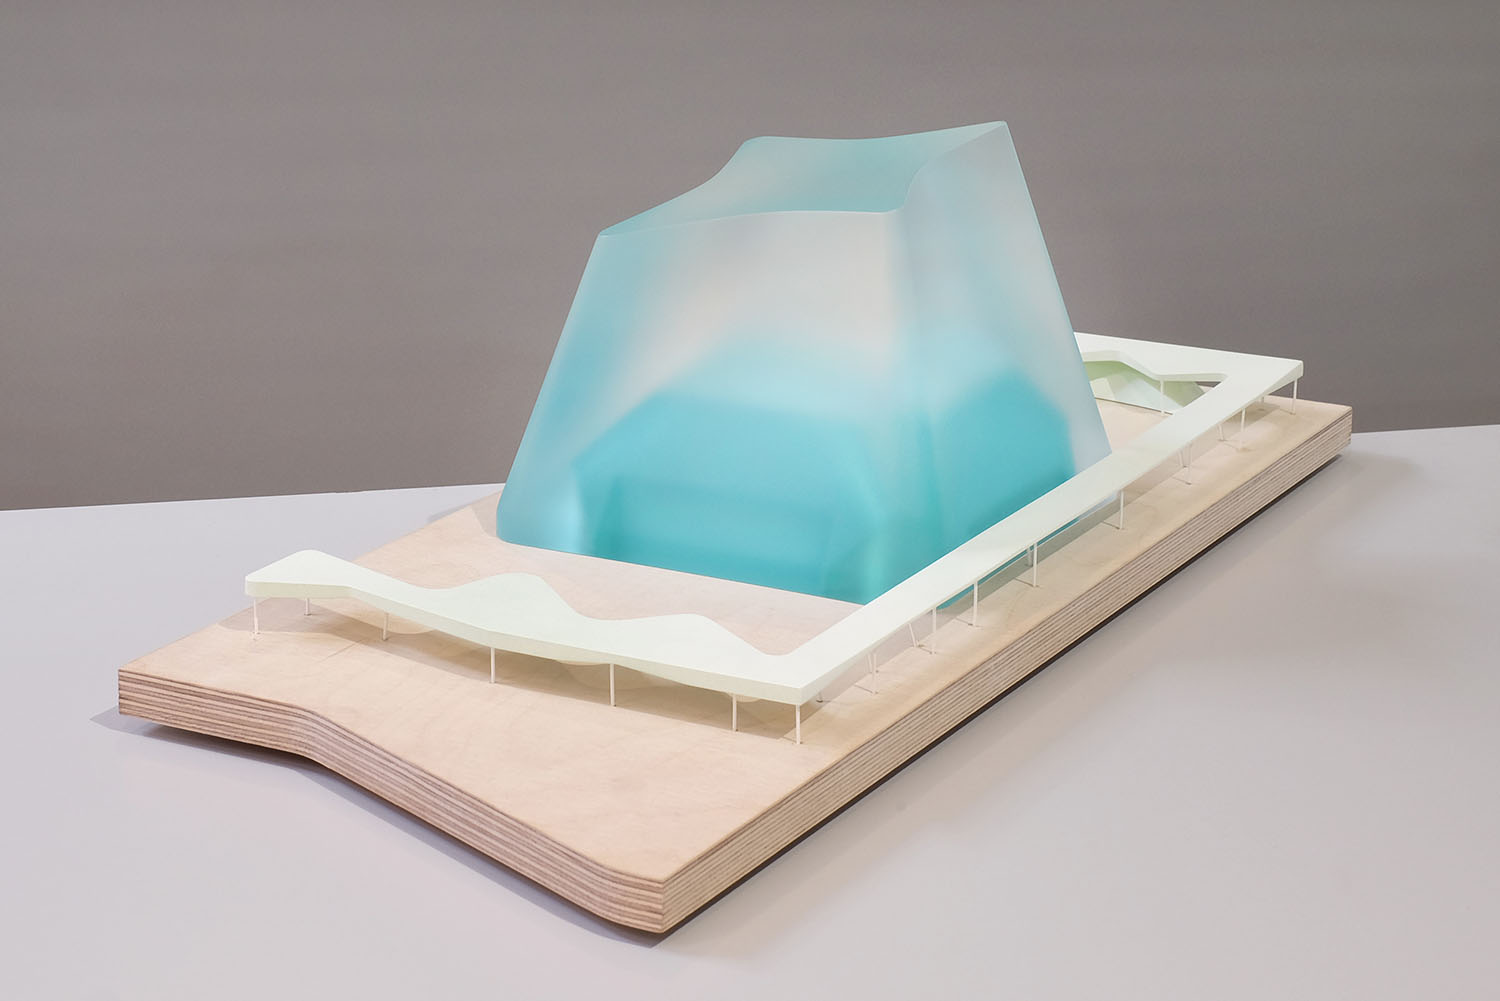 Resin architectural model